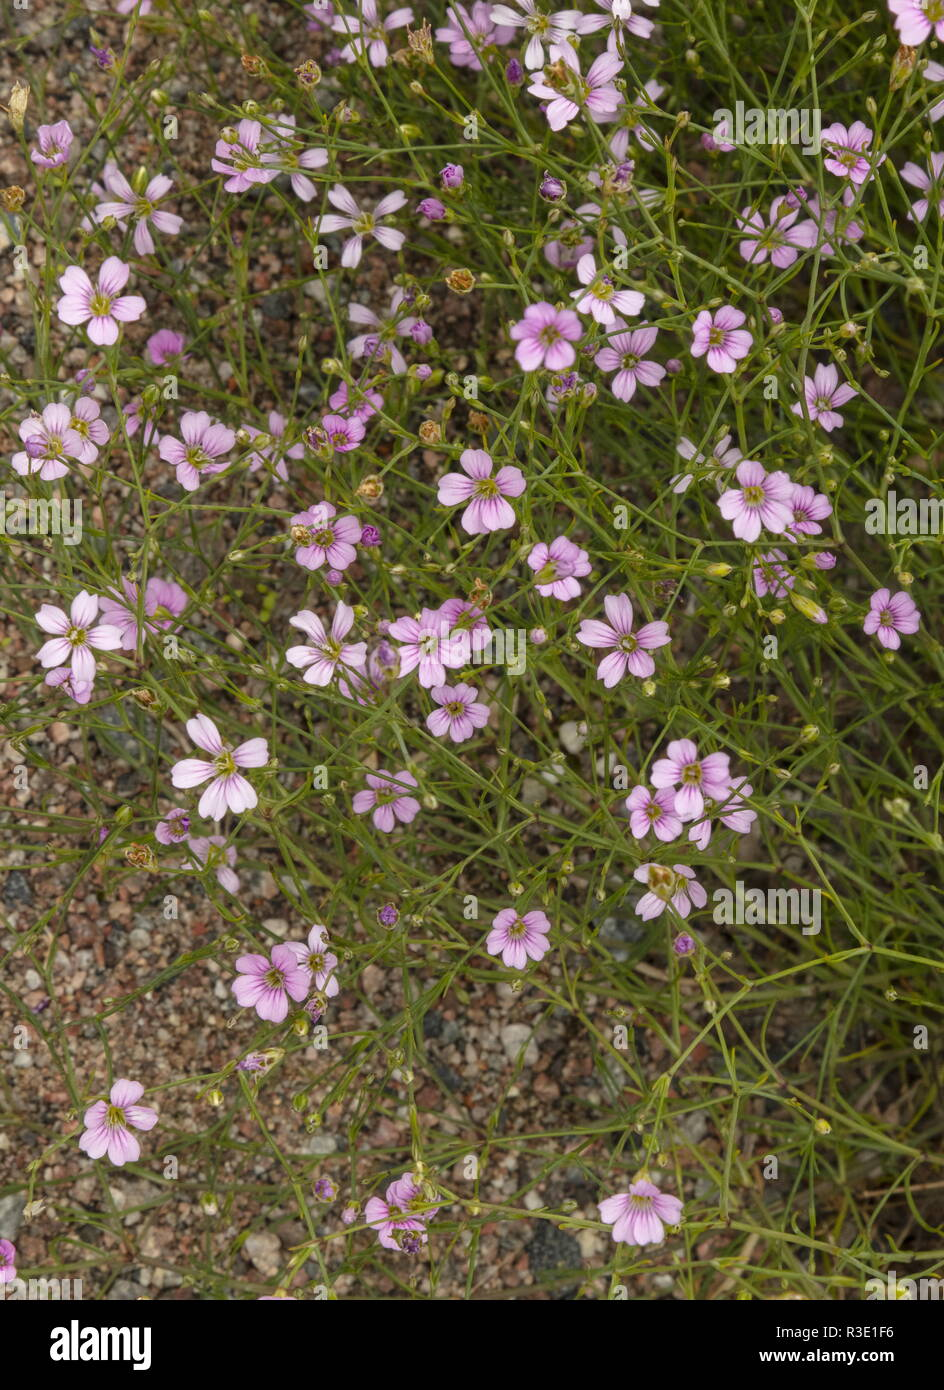 Tunic flower, Petrorhagia saxifraga in flower; southern Europe. - Stock Image